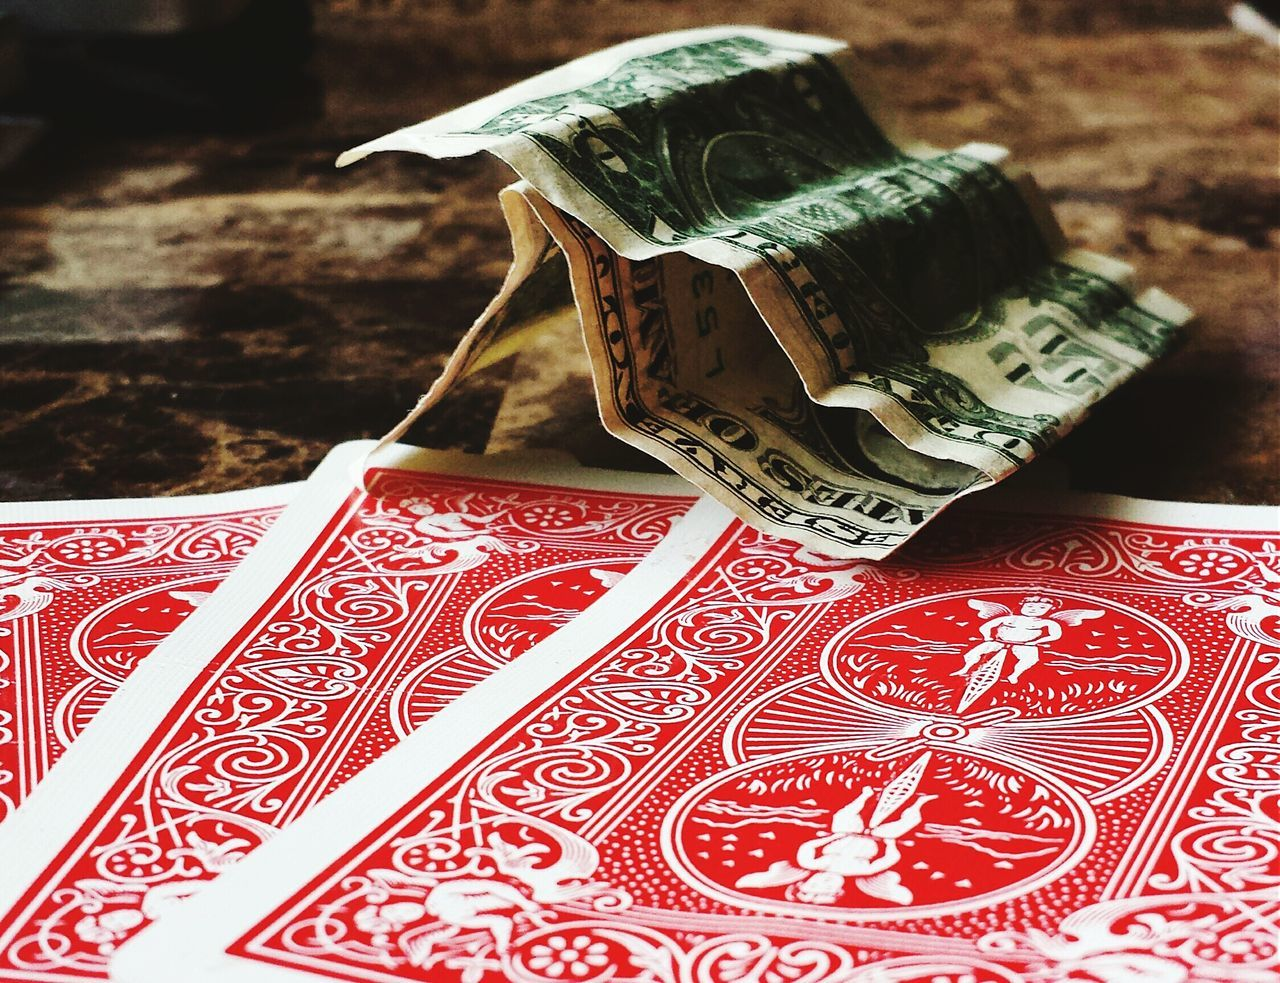 Taking Photos Check This Out Hanging Out Playing Cards